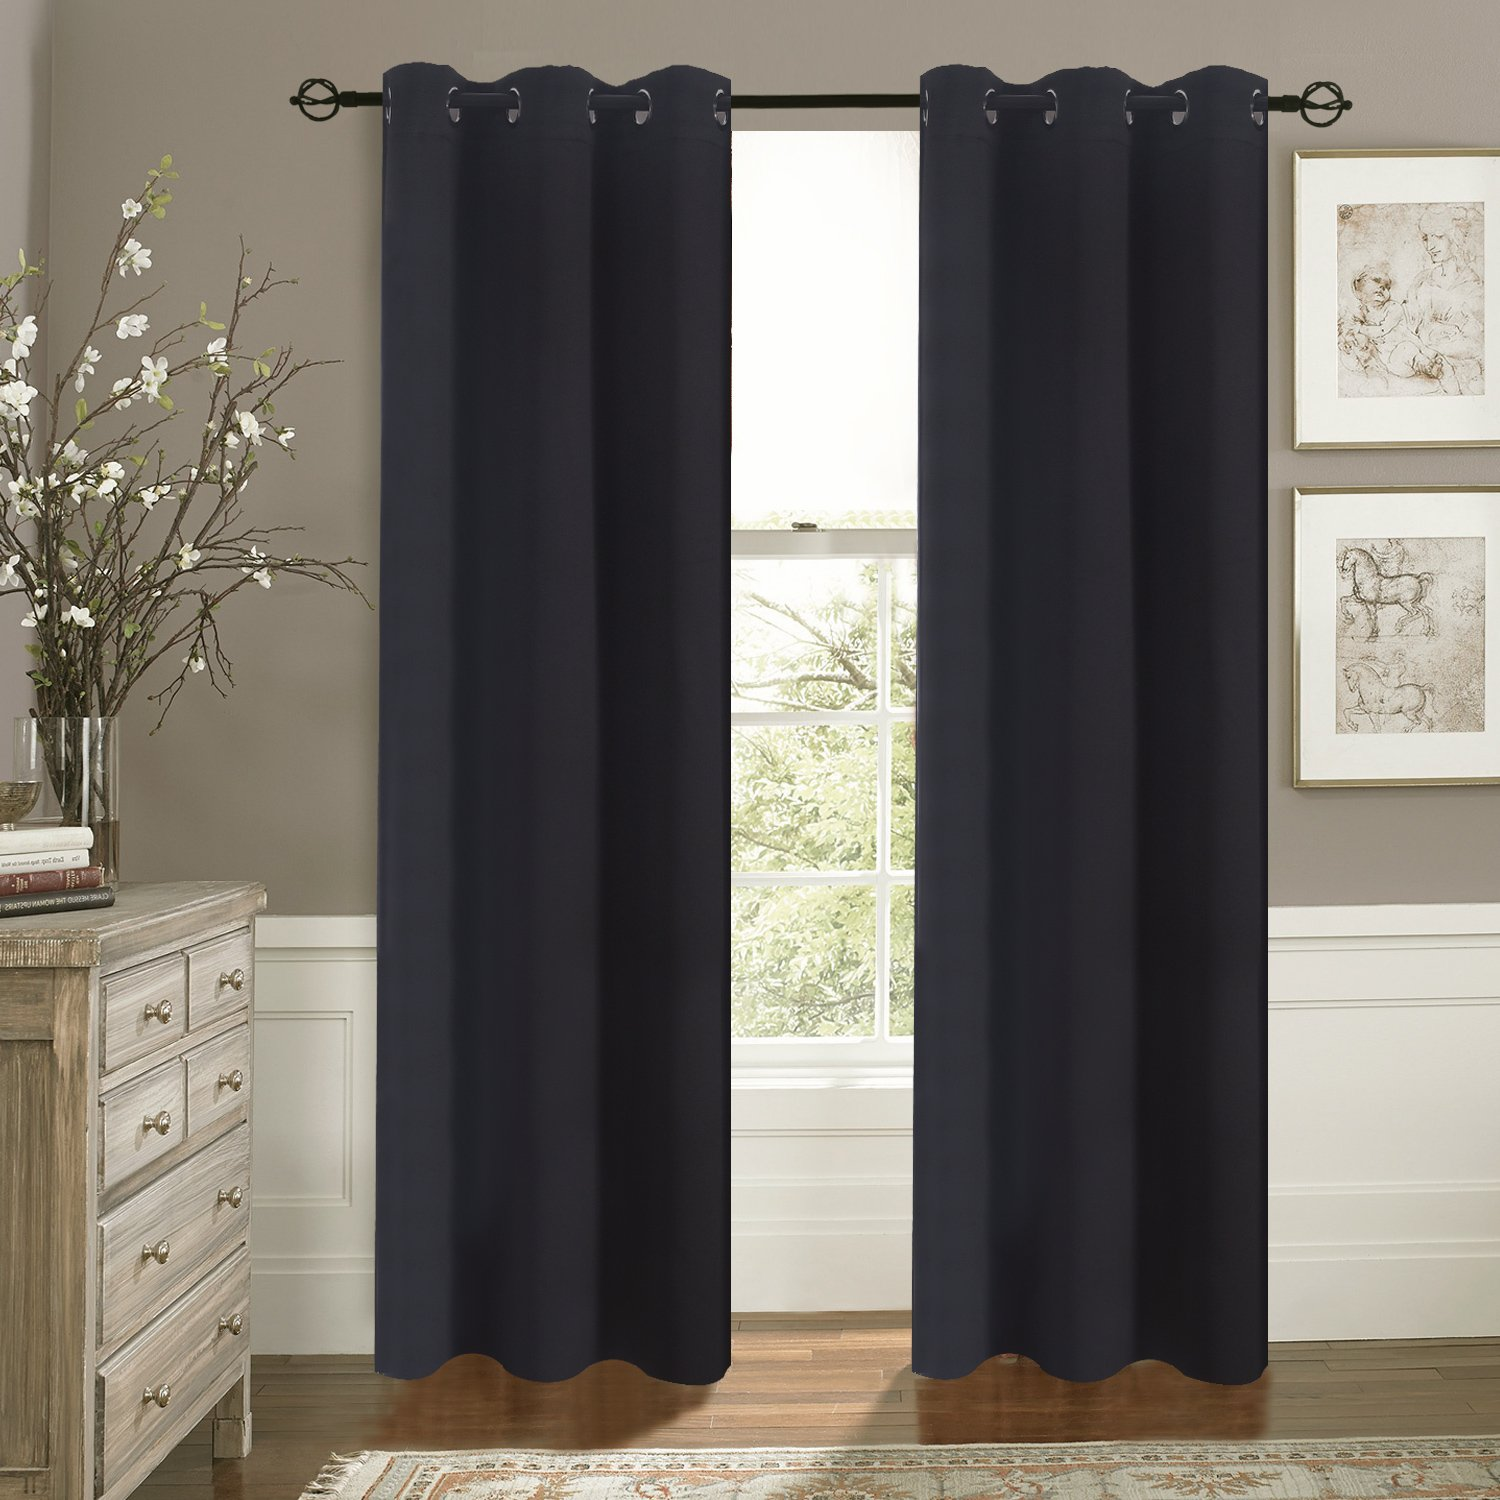 Beautiful Black Window Curtain Panels Ease Bedding With Style